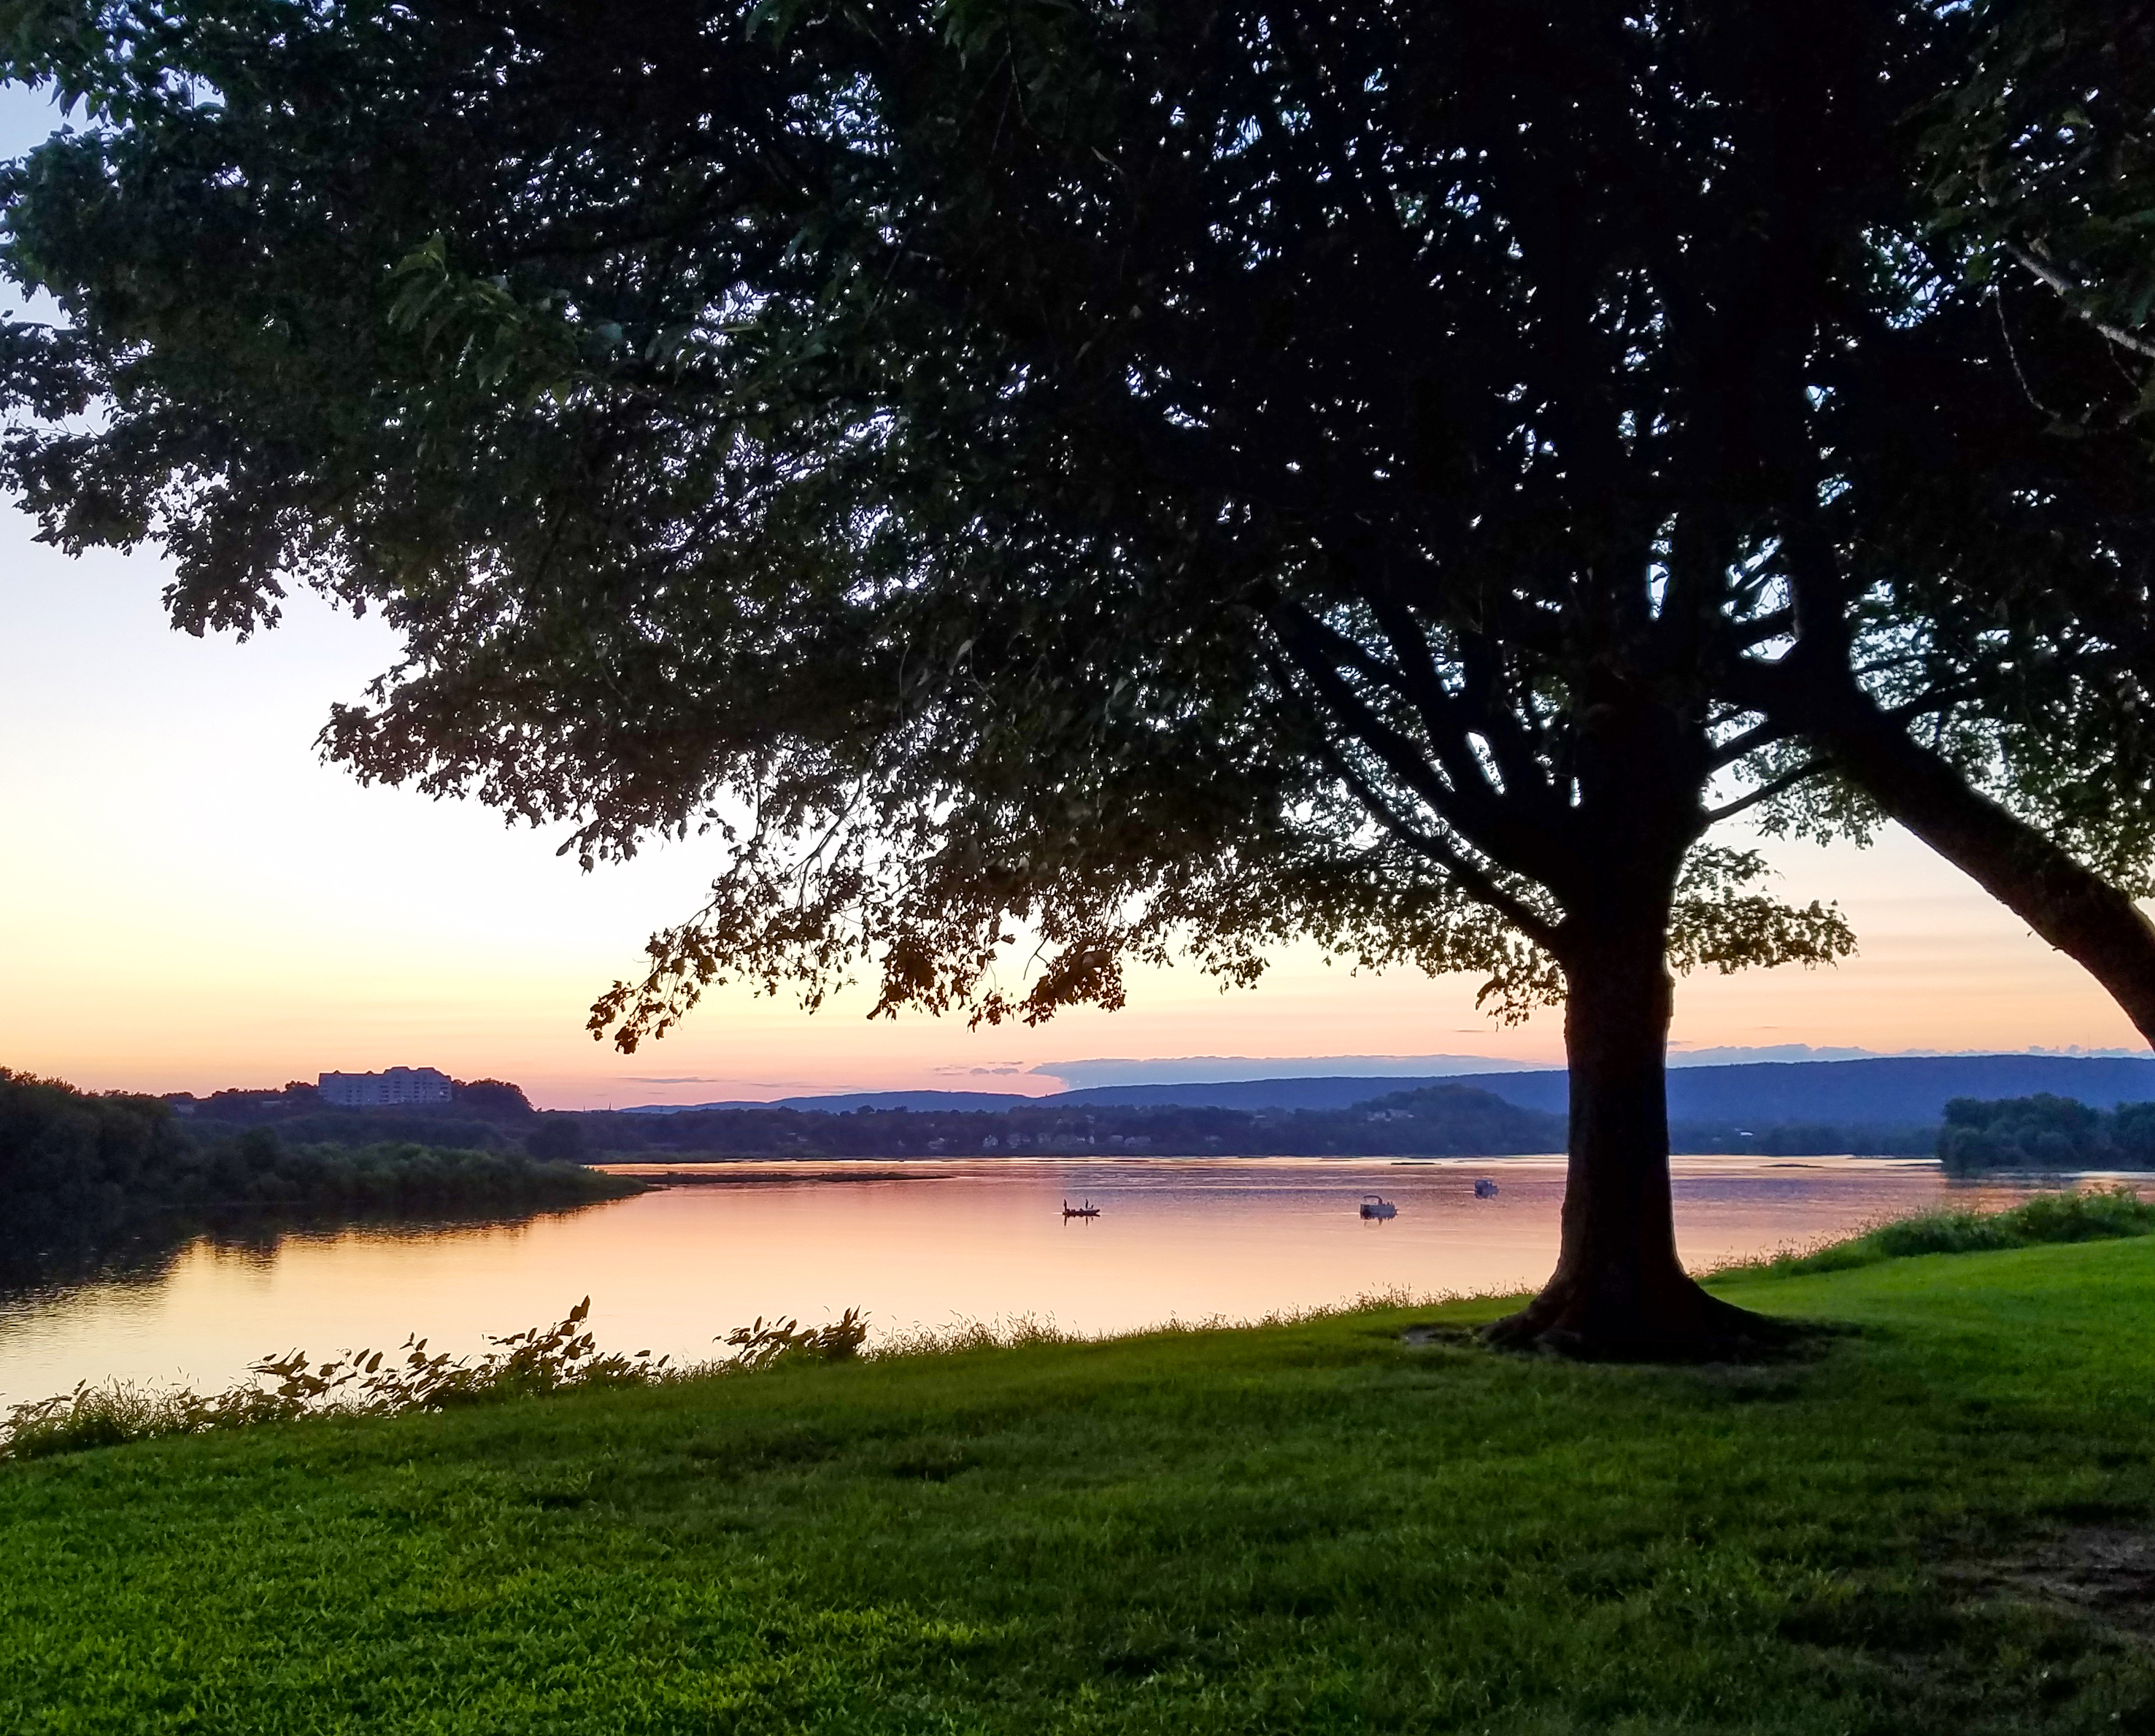 Sunset on the Susquehanna